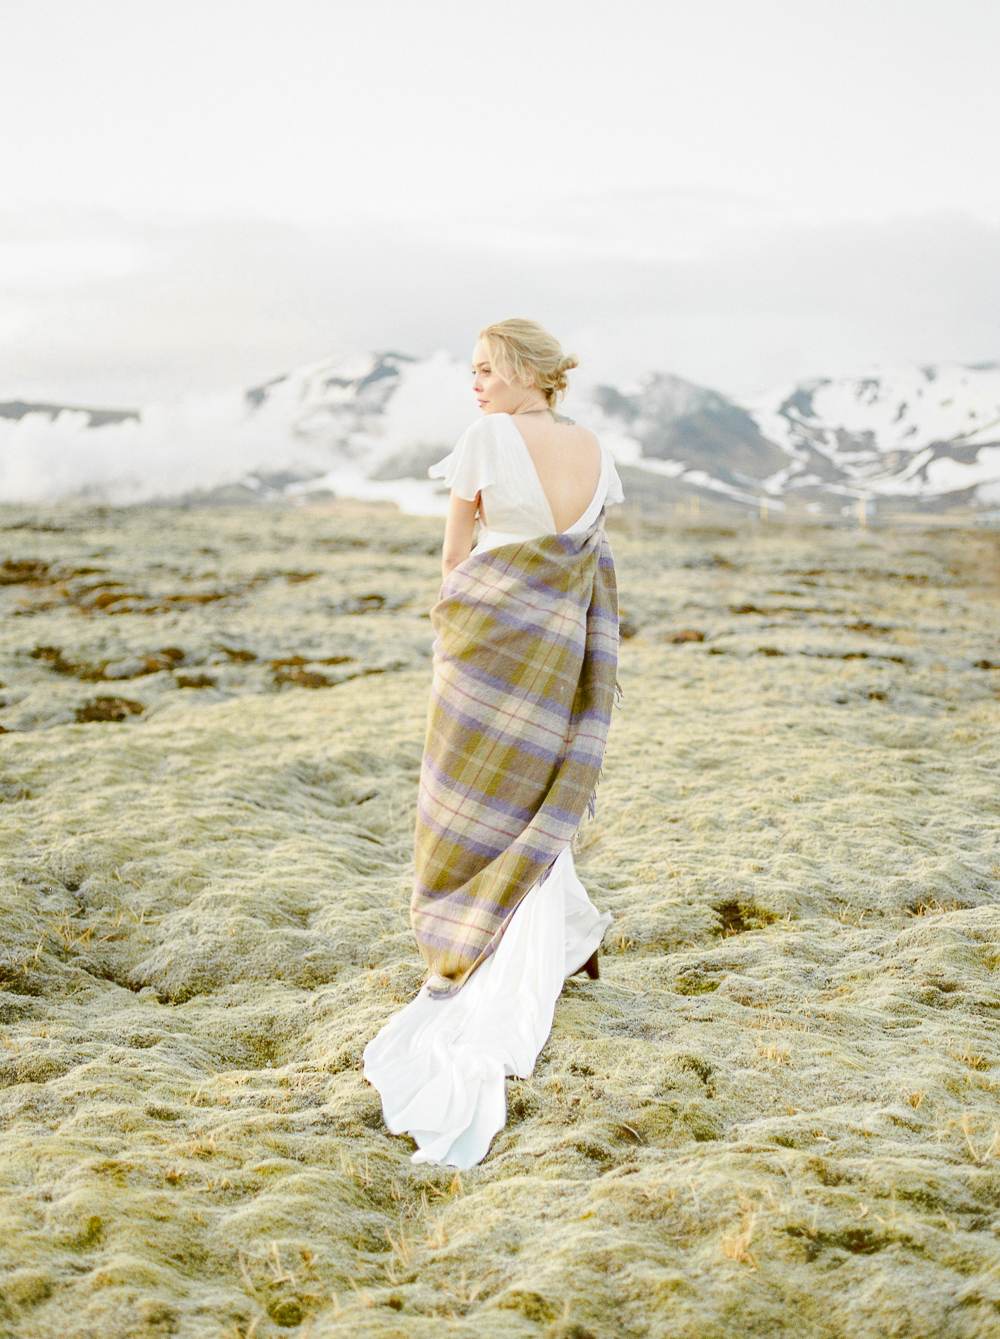 chen sands film photographer iceland bridal-1.jpg